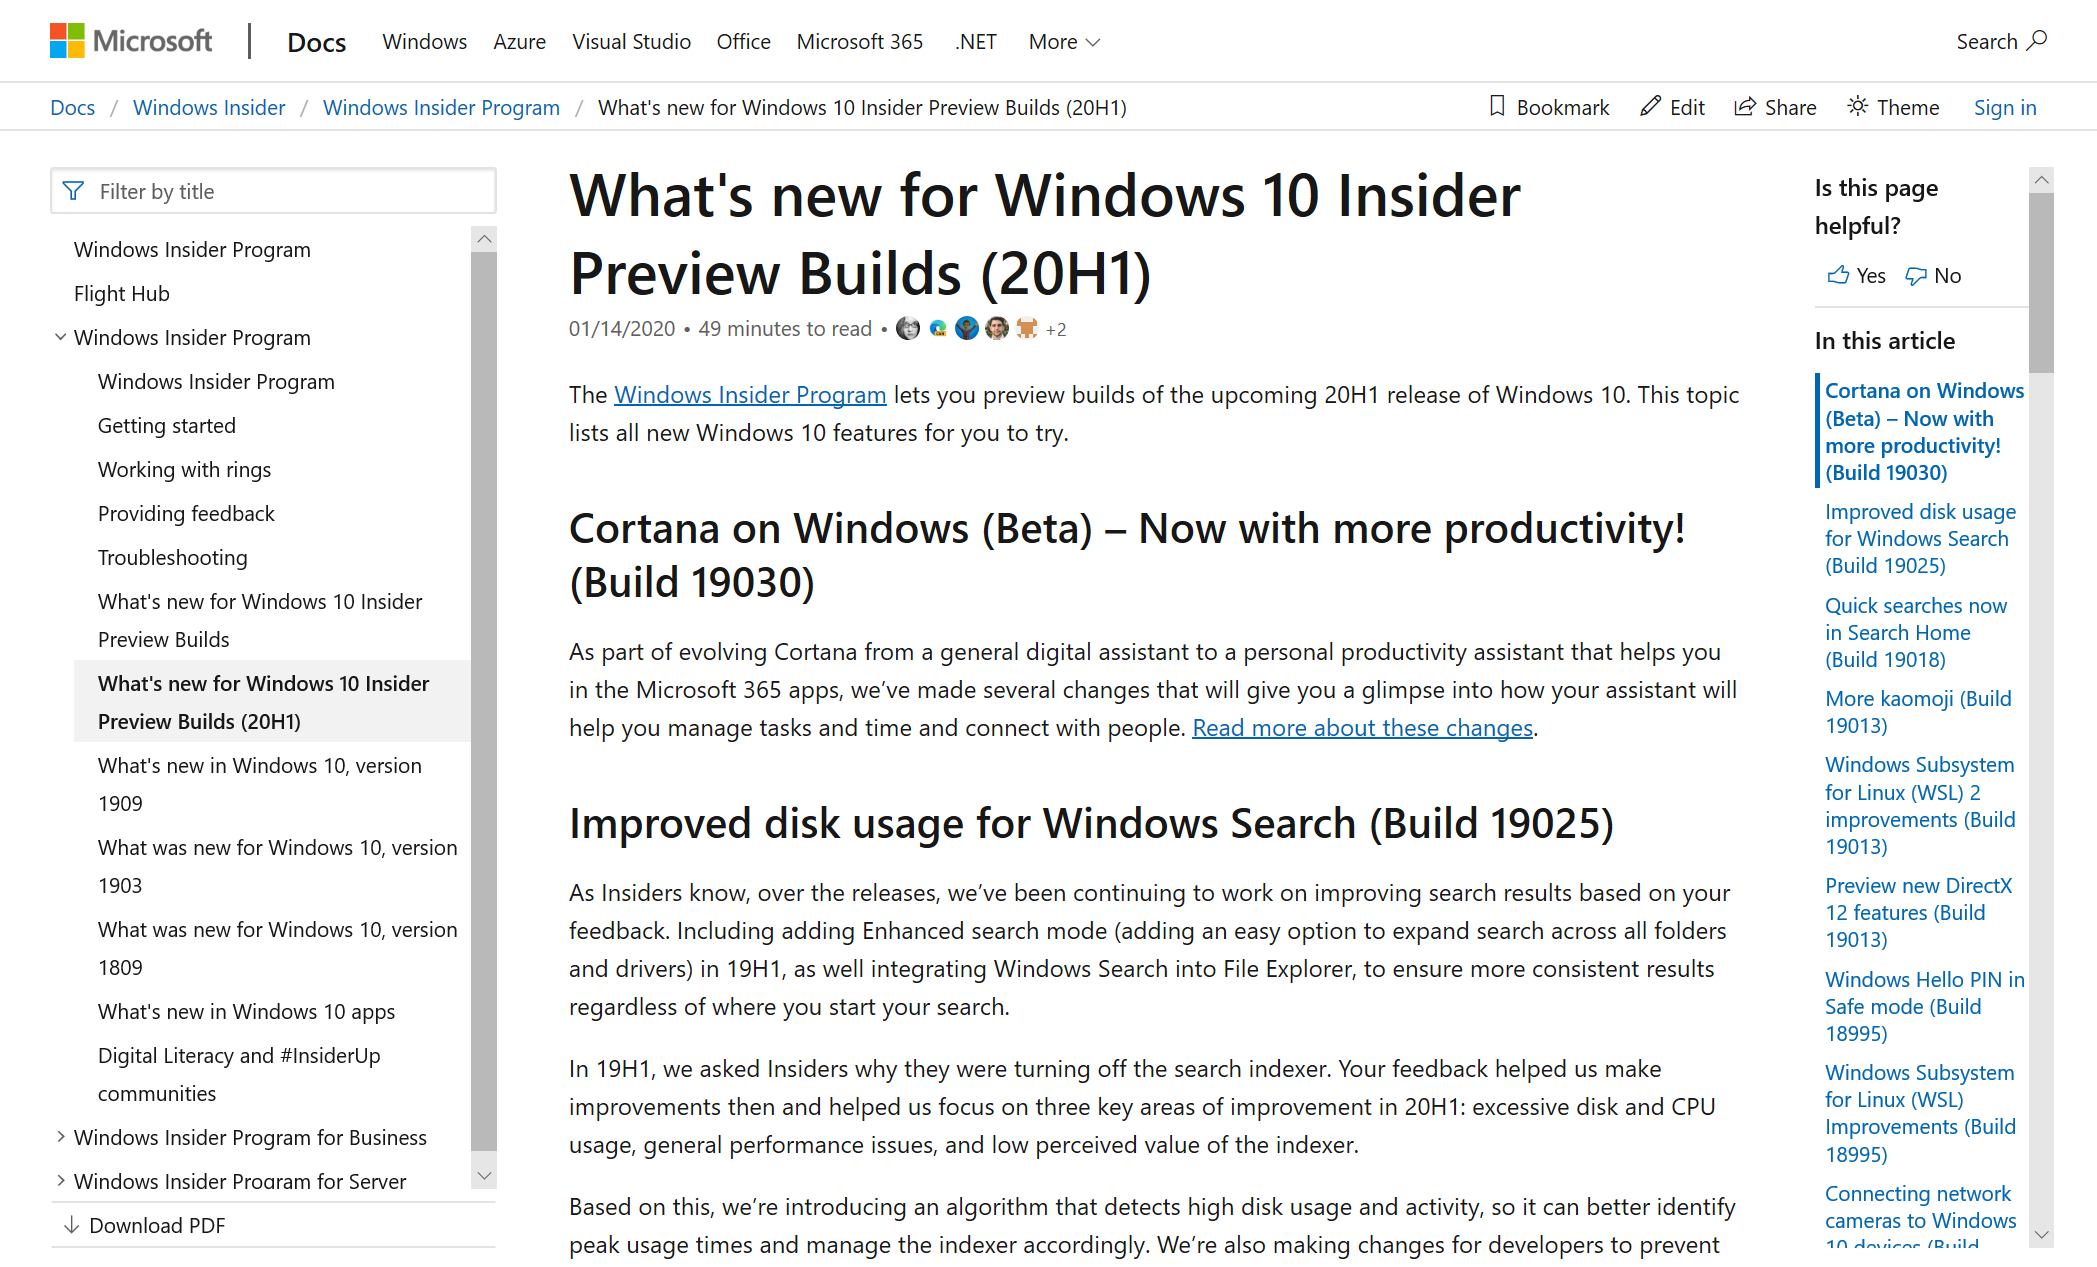 Our Docs page of what's new in the latest Windows 10 Insider Preview Builds to easily connect you to the latest features.